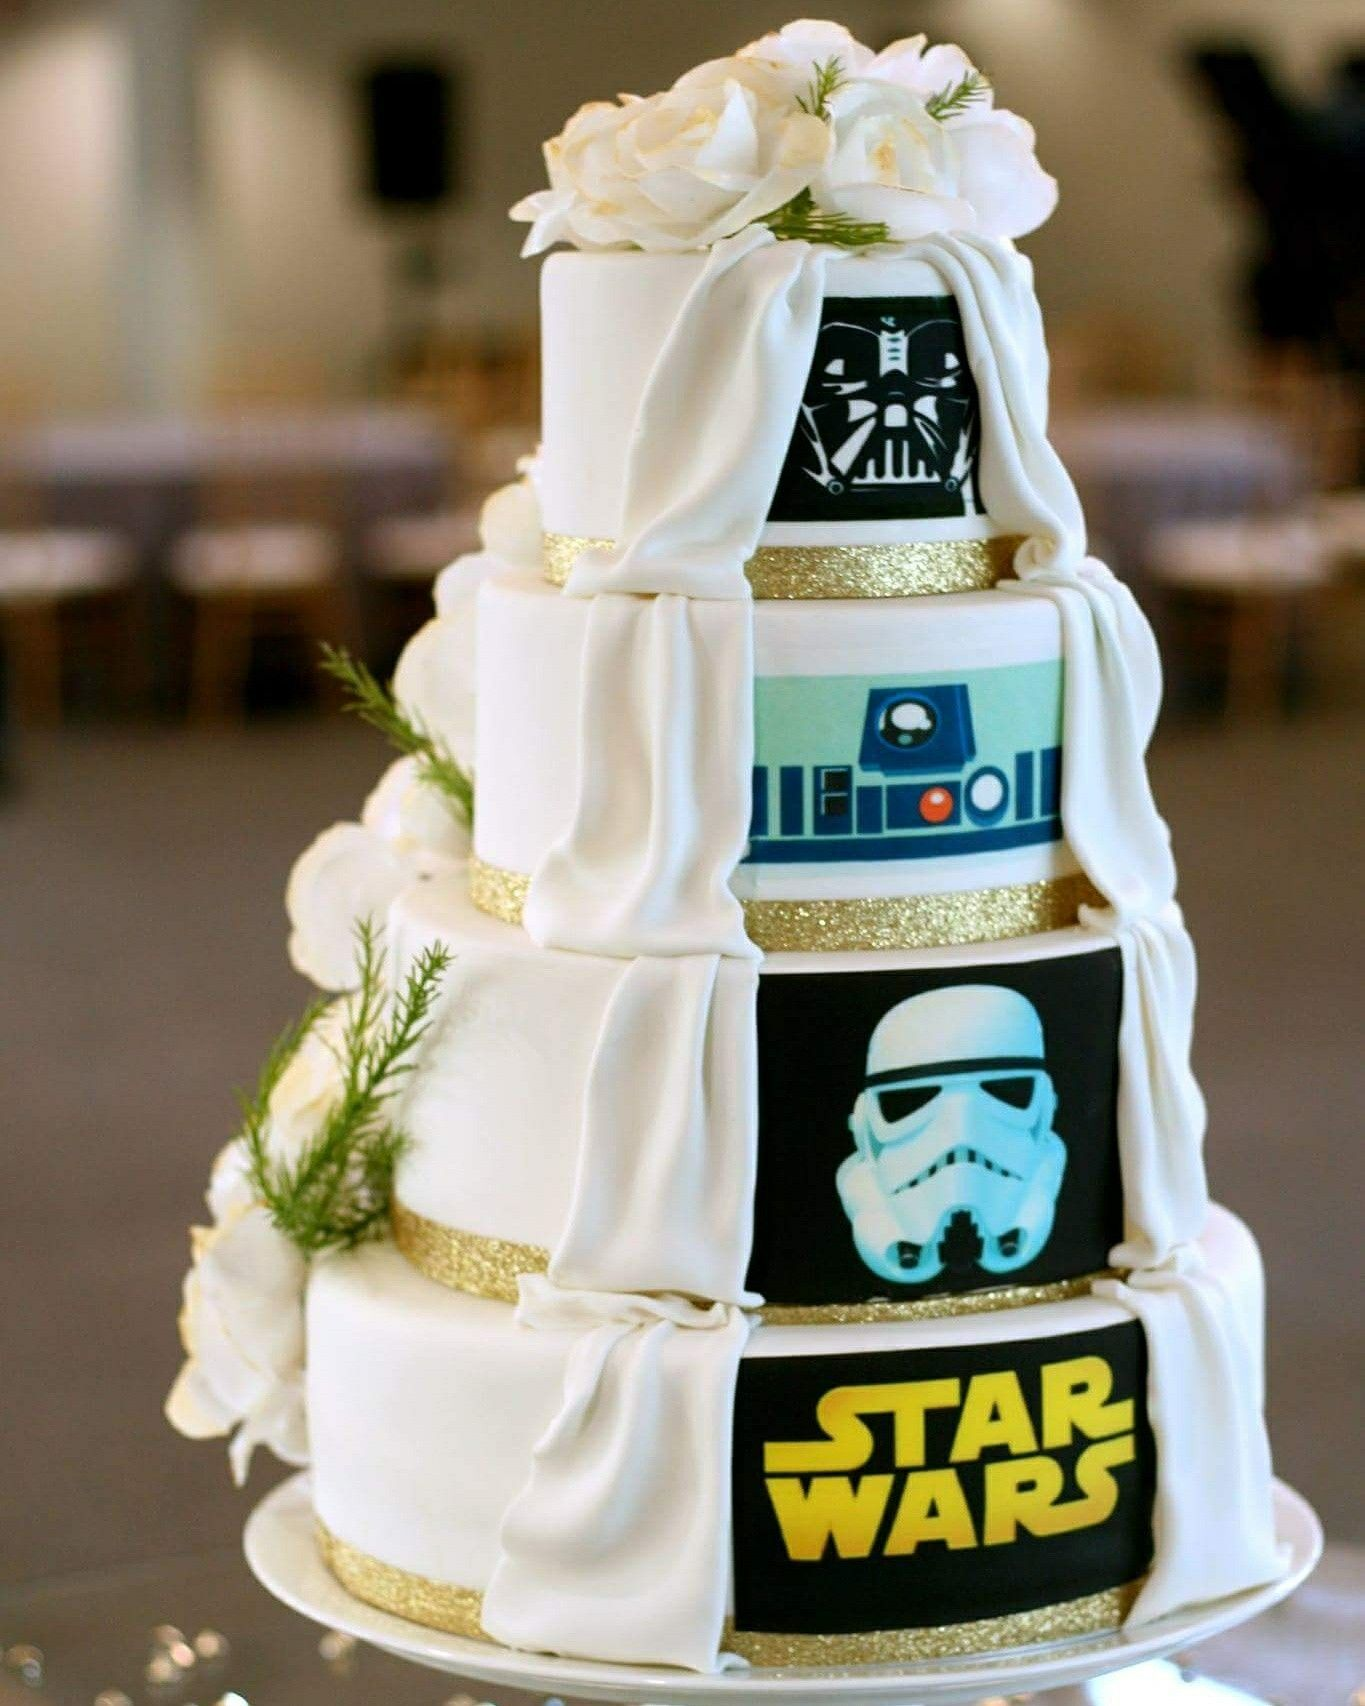 Star Wars Wedding Cake By Sucre Seattle Www Sucreseattle Com